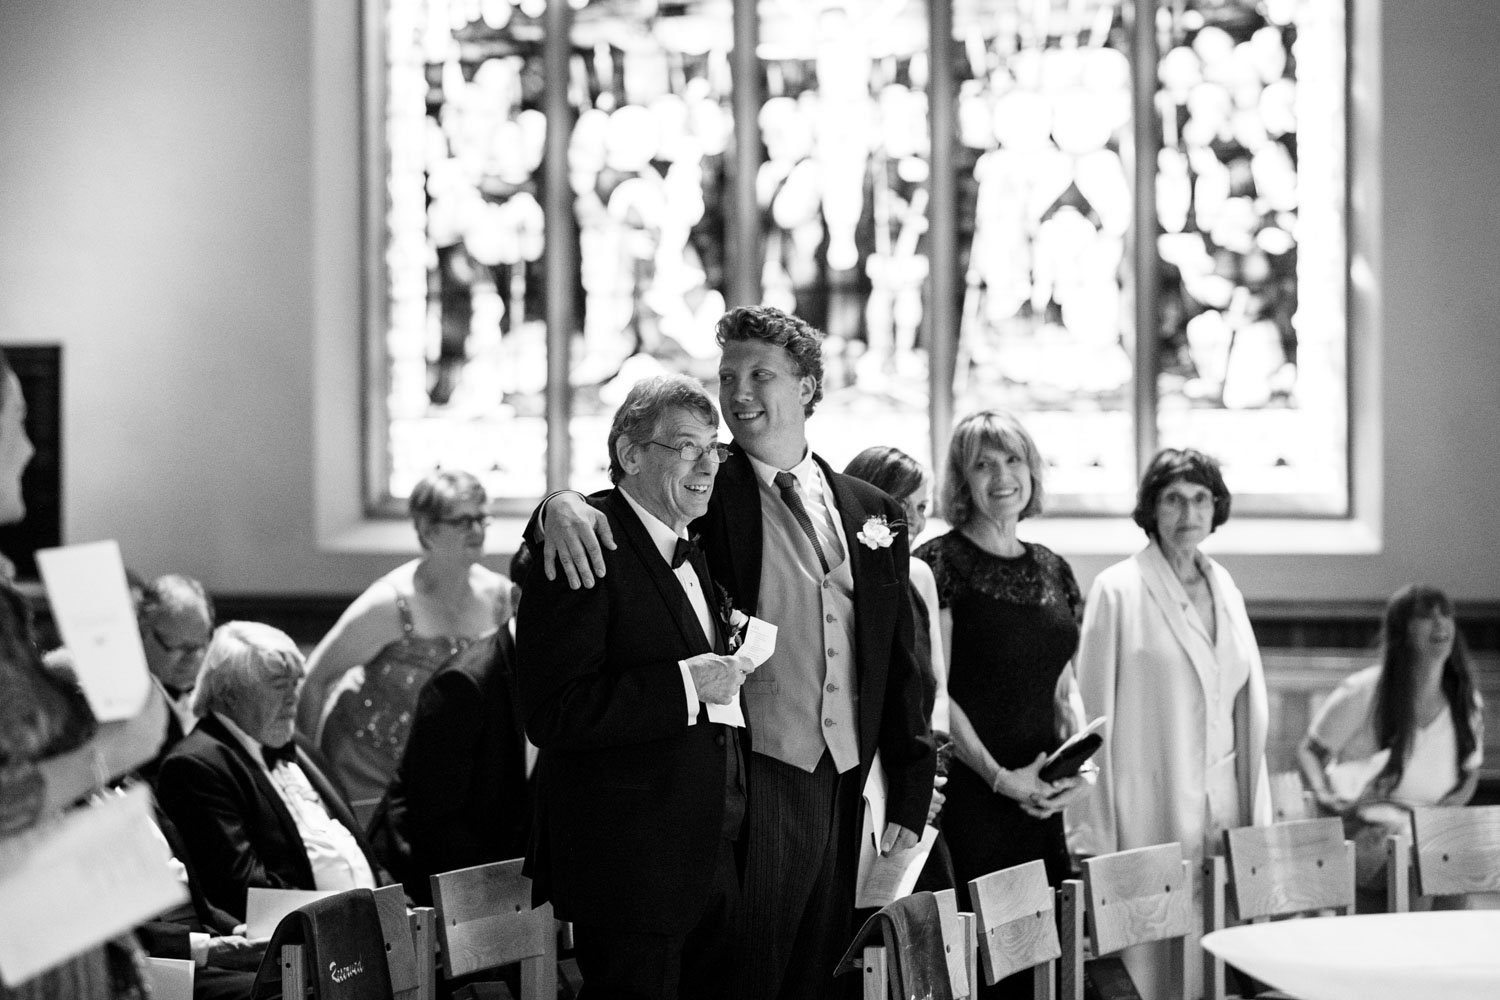 Wedding at Christ Church Cathedral in Vancouver